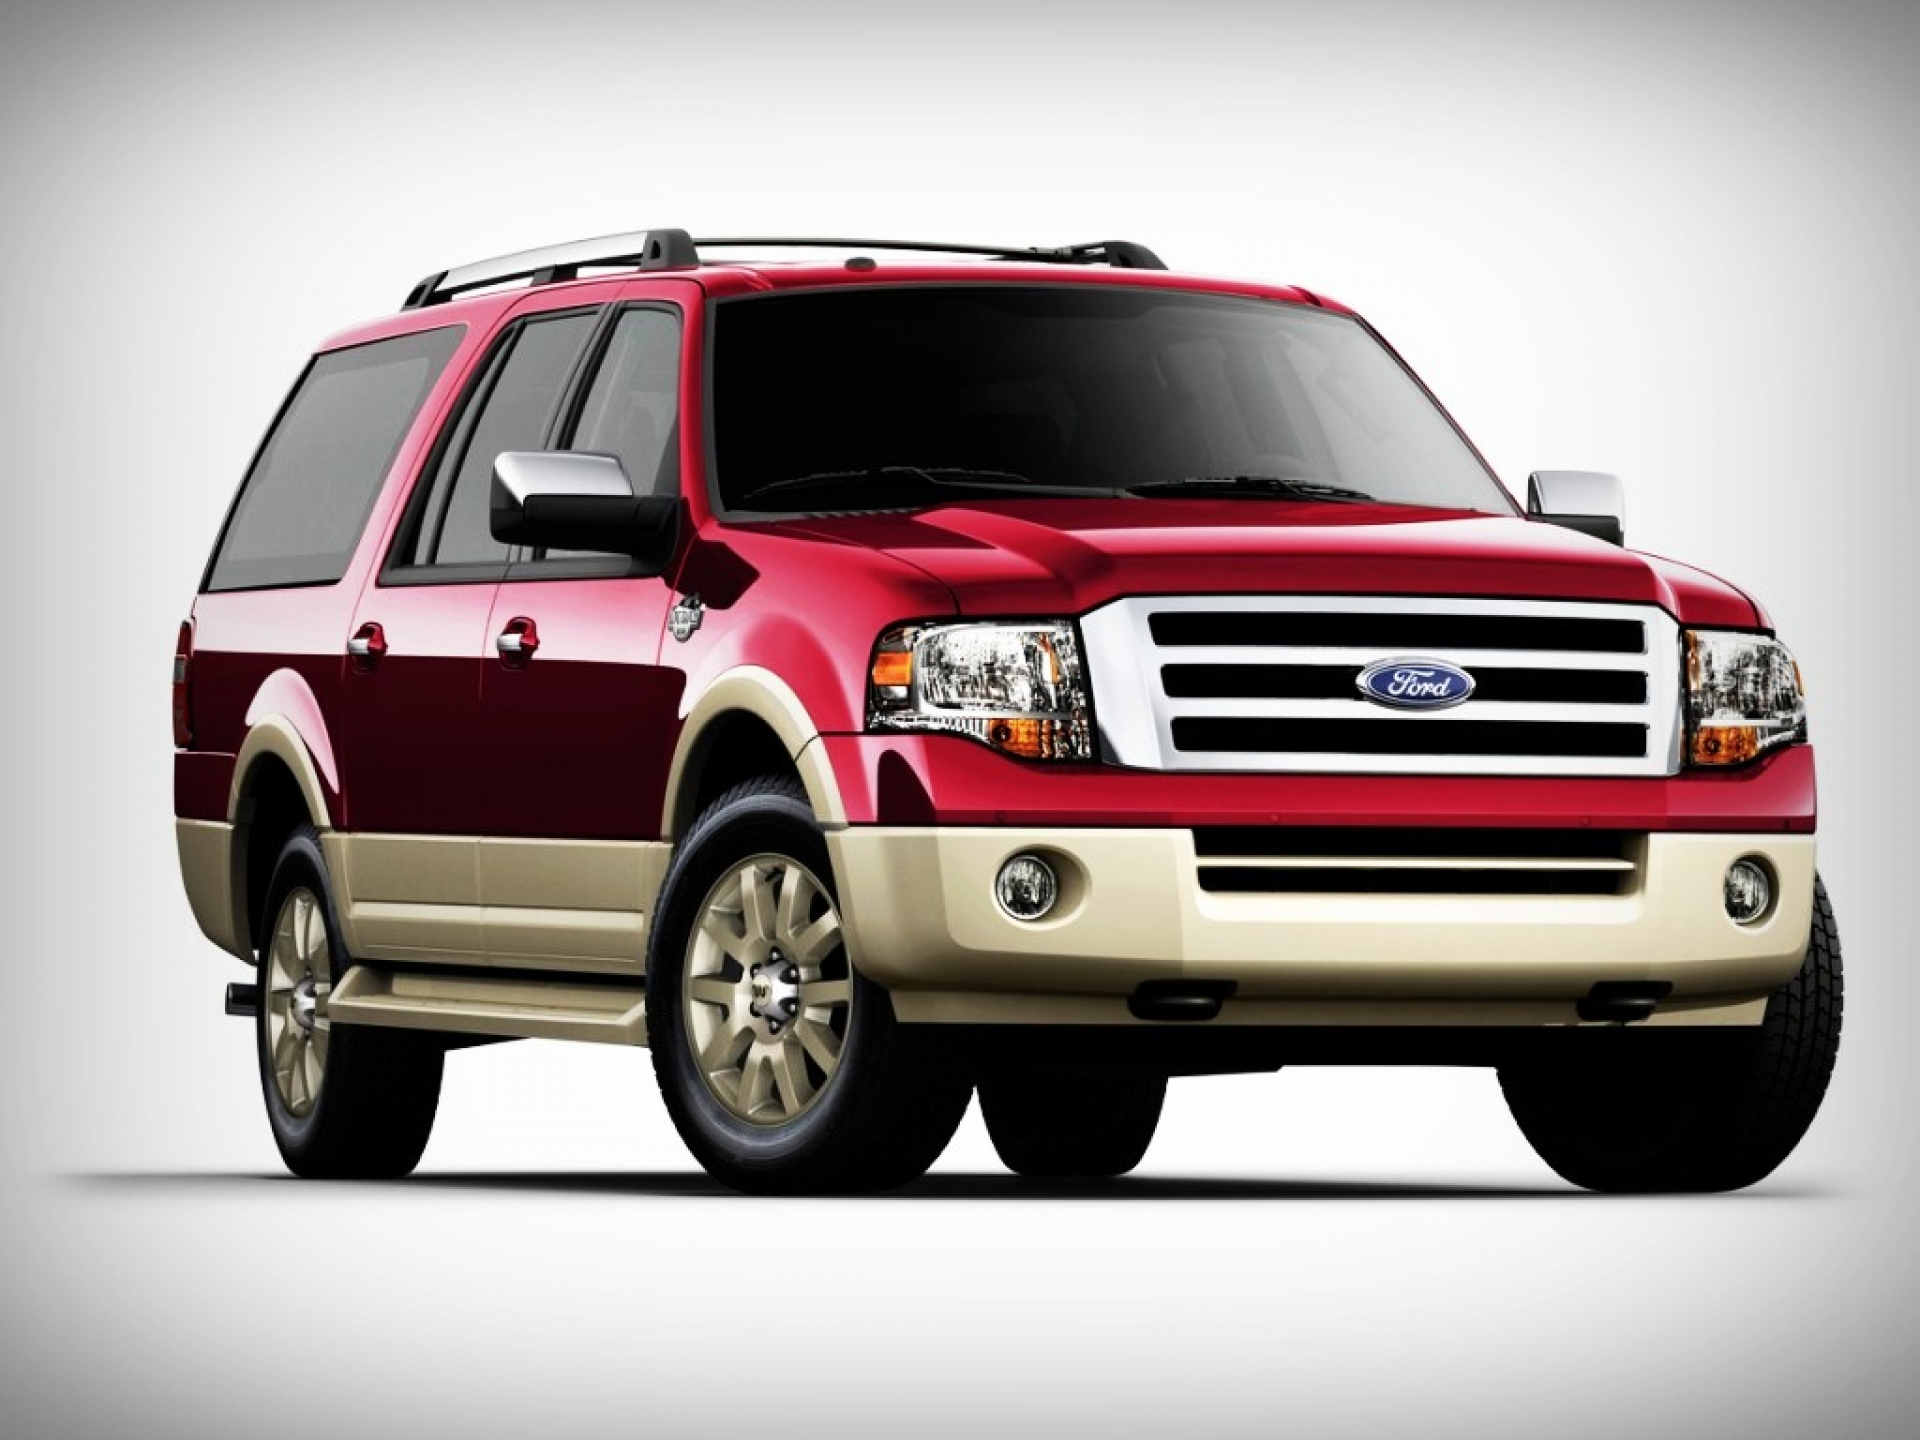 Ford Expedition red #1